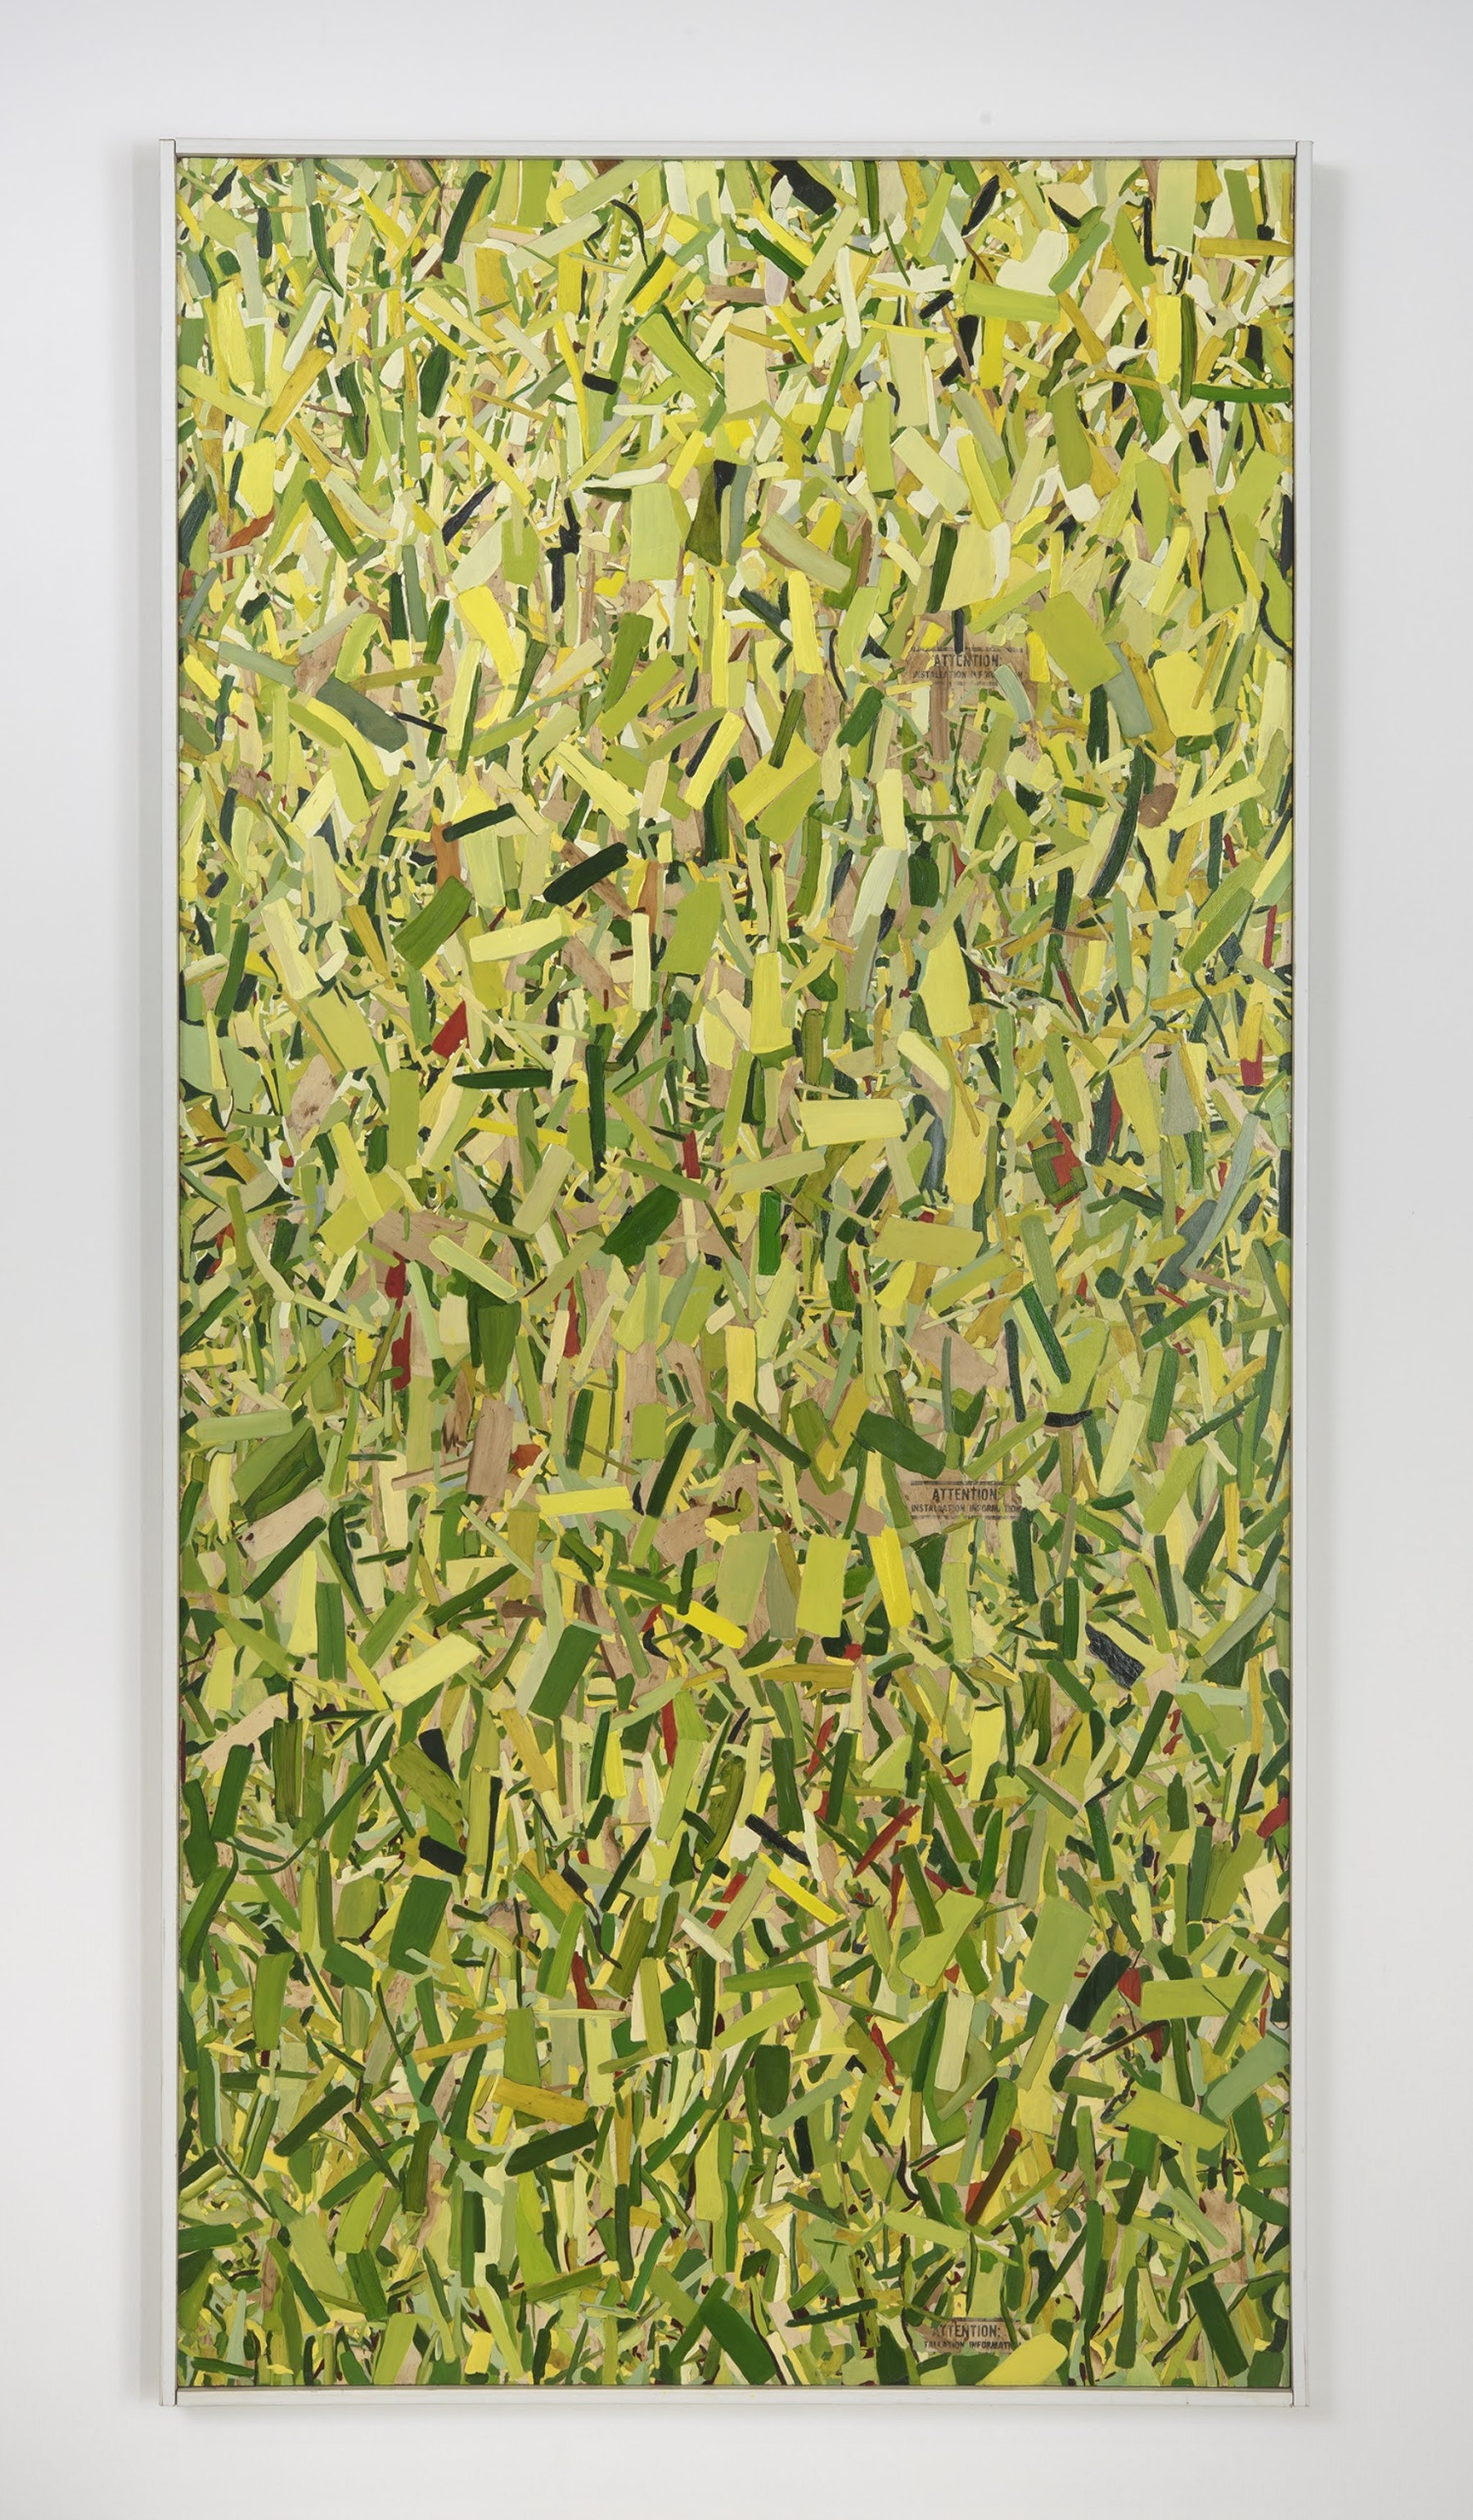 """Kim Dingle """"HOME DEPOT COLORING BOOK (leaves),"""" 2017 Oil on OSB with artist's frame 97.75 x 49.5 x 2.5"""" [HxWxD] (248.29 x 125.73 x 6.35 cm) Inventory #DIN190 Courtesy of the artist and Vielmetter Los Angeles Photo credit: Robert Wedemeyer"""